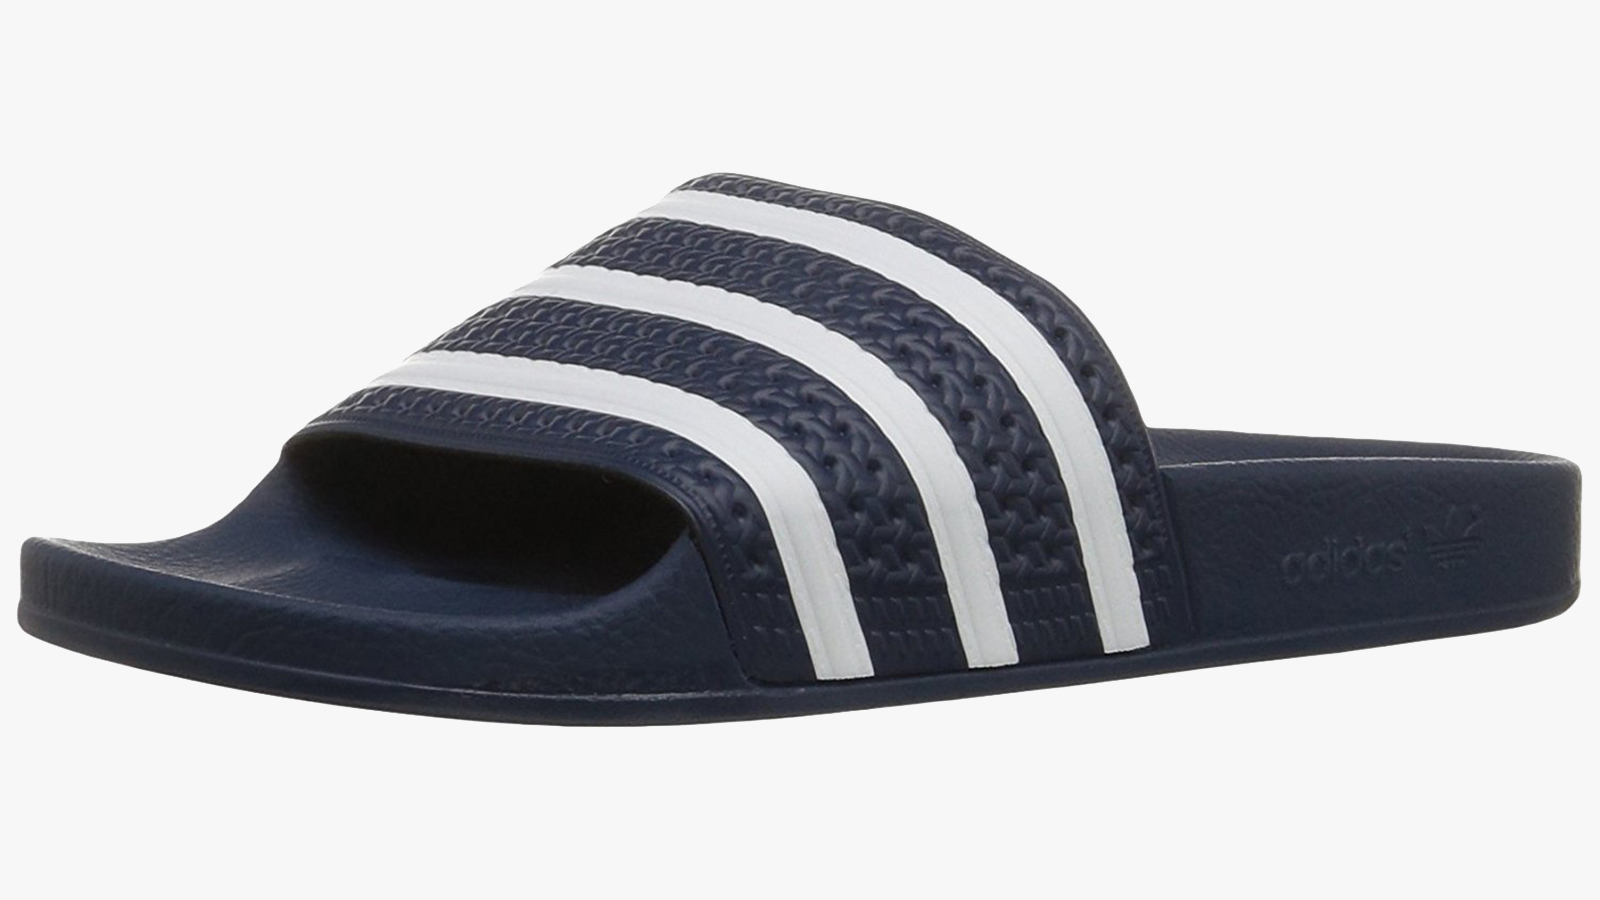 Adidas Adilette Best Men's Slides